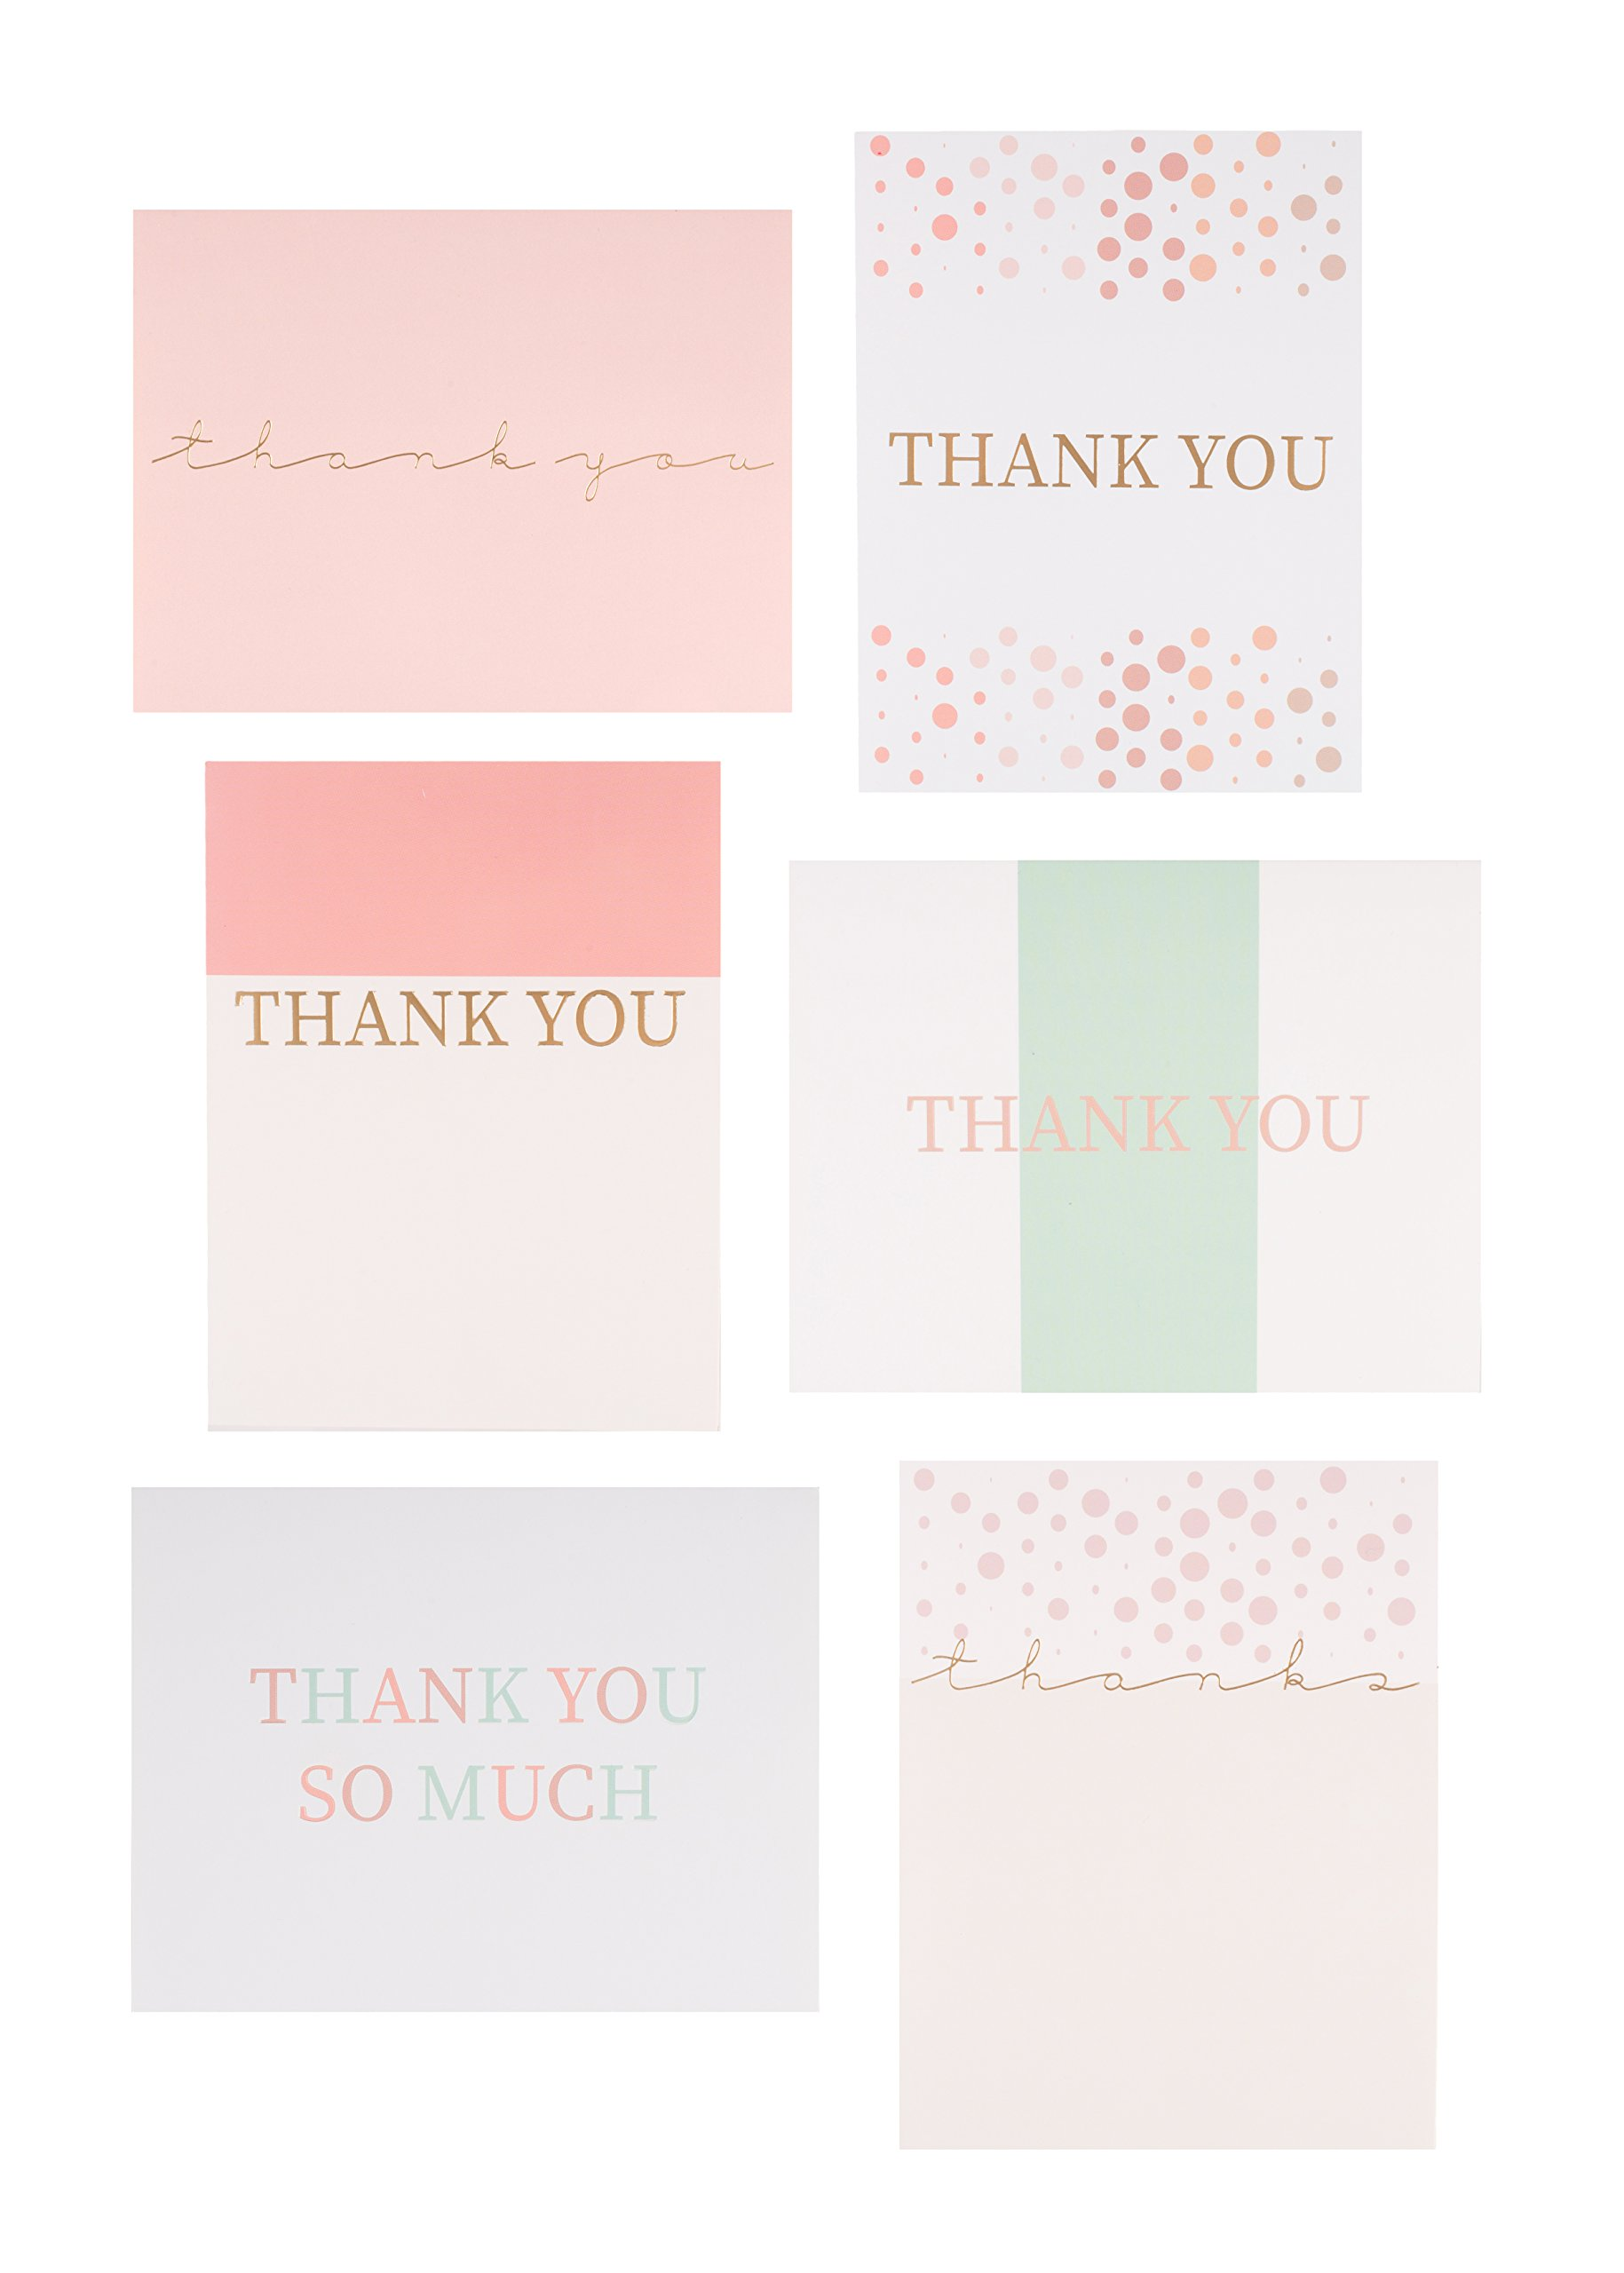 30 Letterpress Thank You Cards with Envelopes and Sticker Seals (4.25 x 5.5 inch)- for bridal shower, weddings, baby shower, graduation, anniversary, business and professional use. Blank Inside!